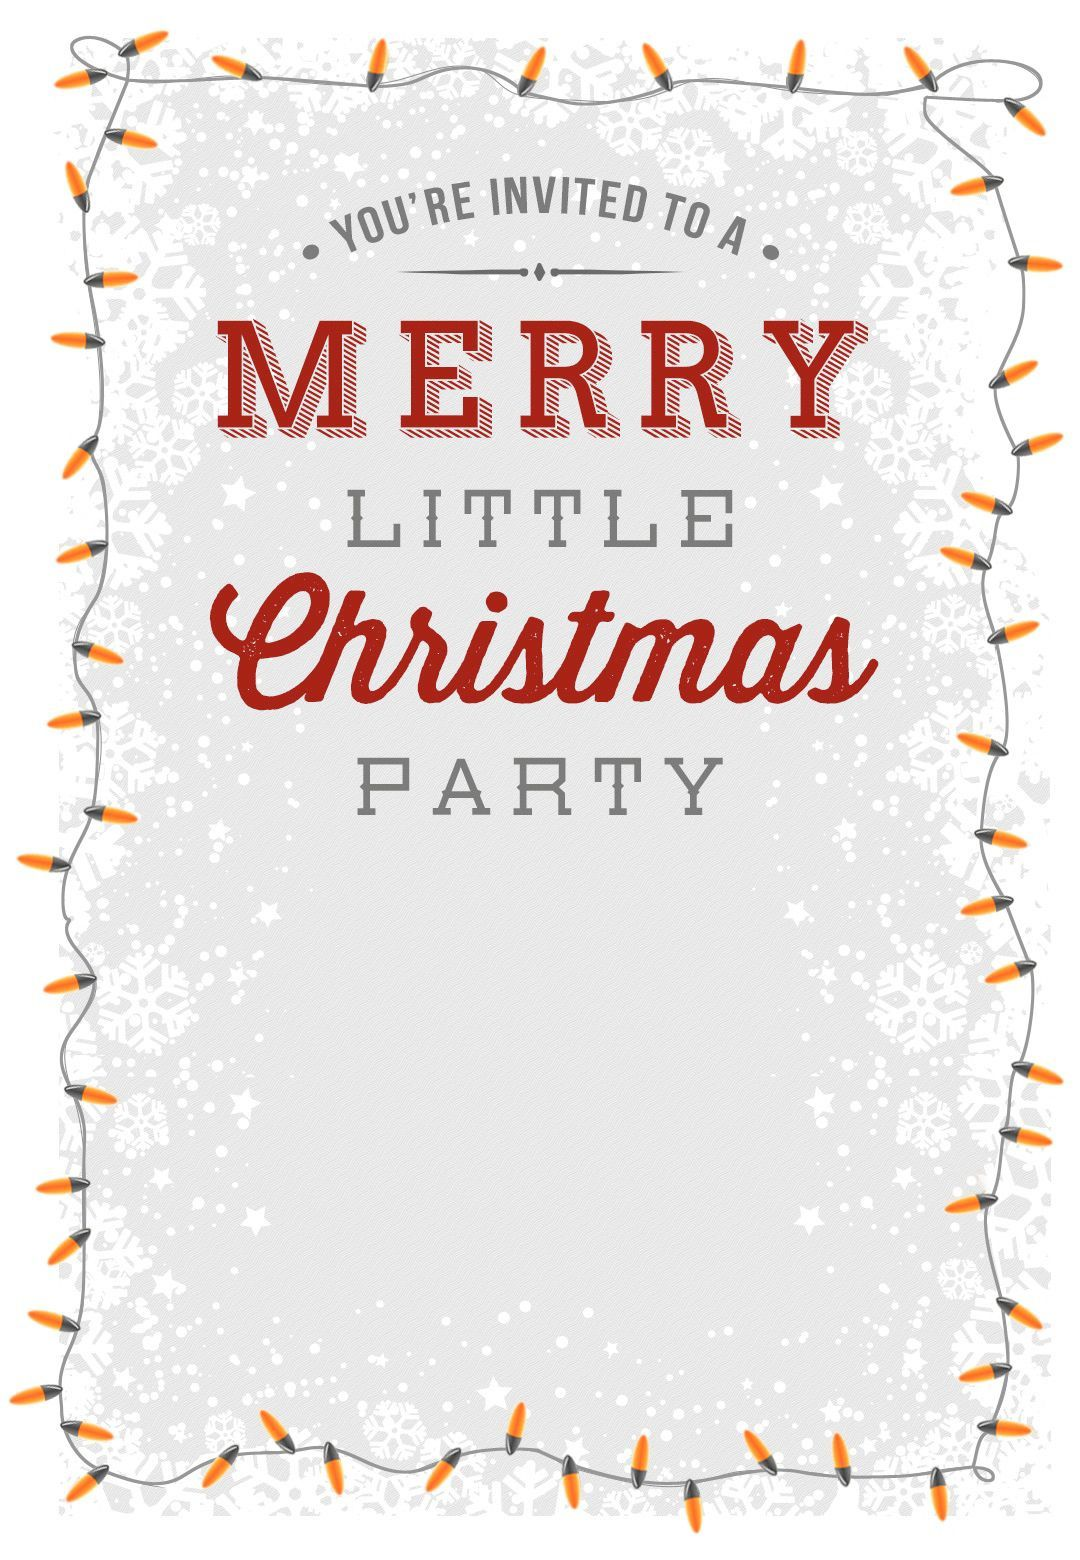 006 Fascinating Christma Party Invitation Template Idea  Funny Free Download Word Card